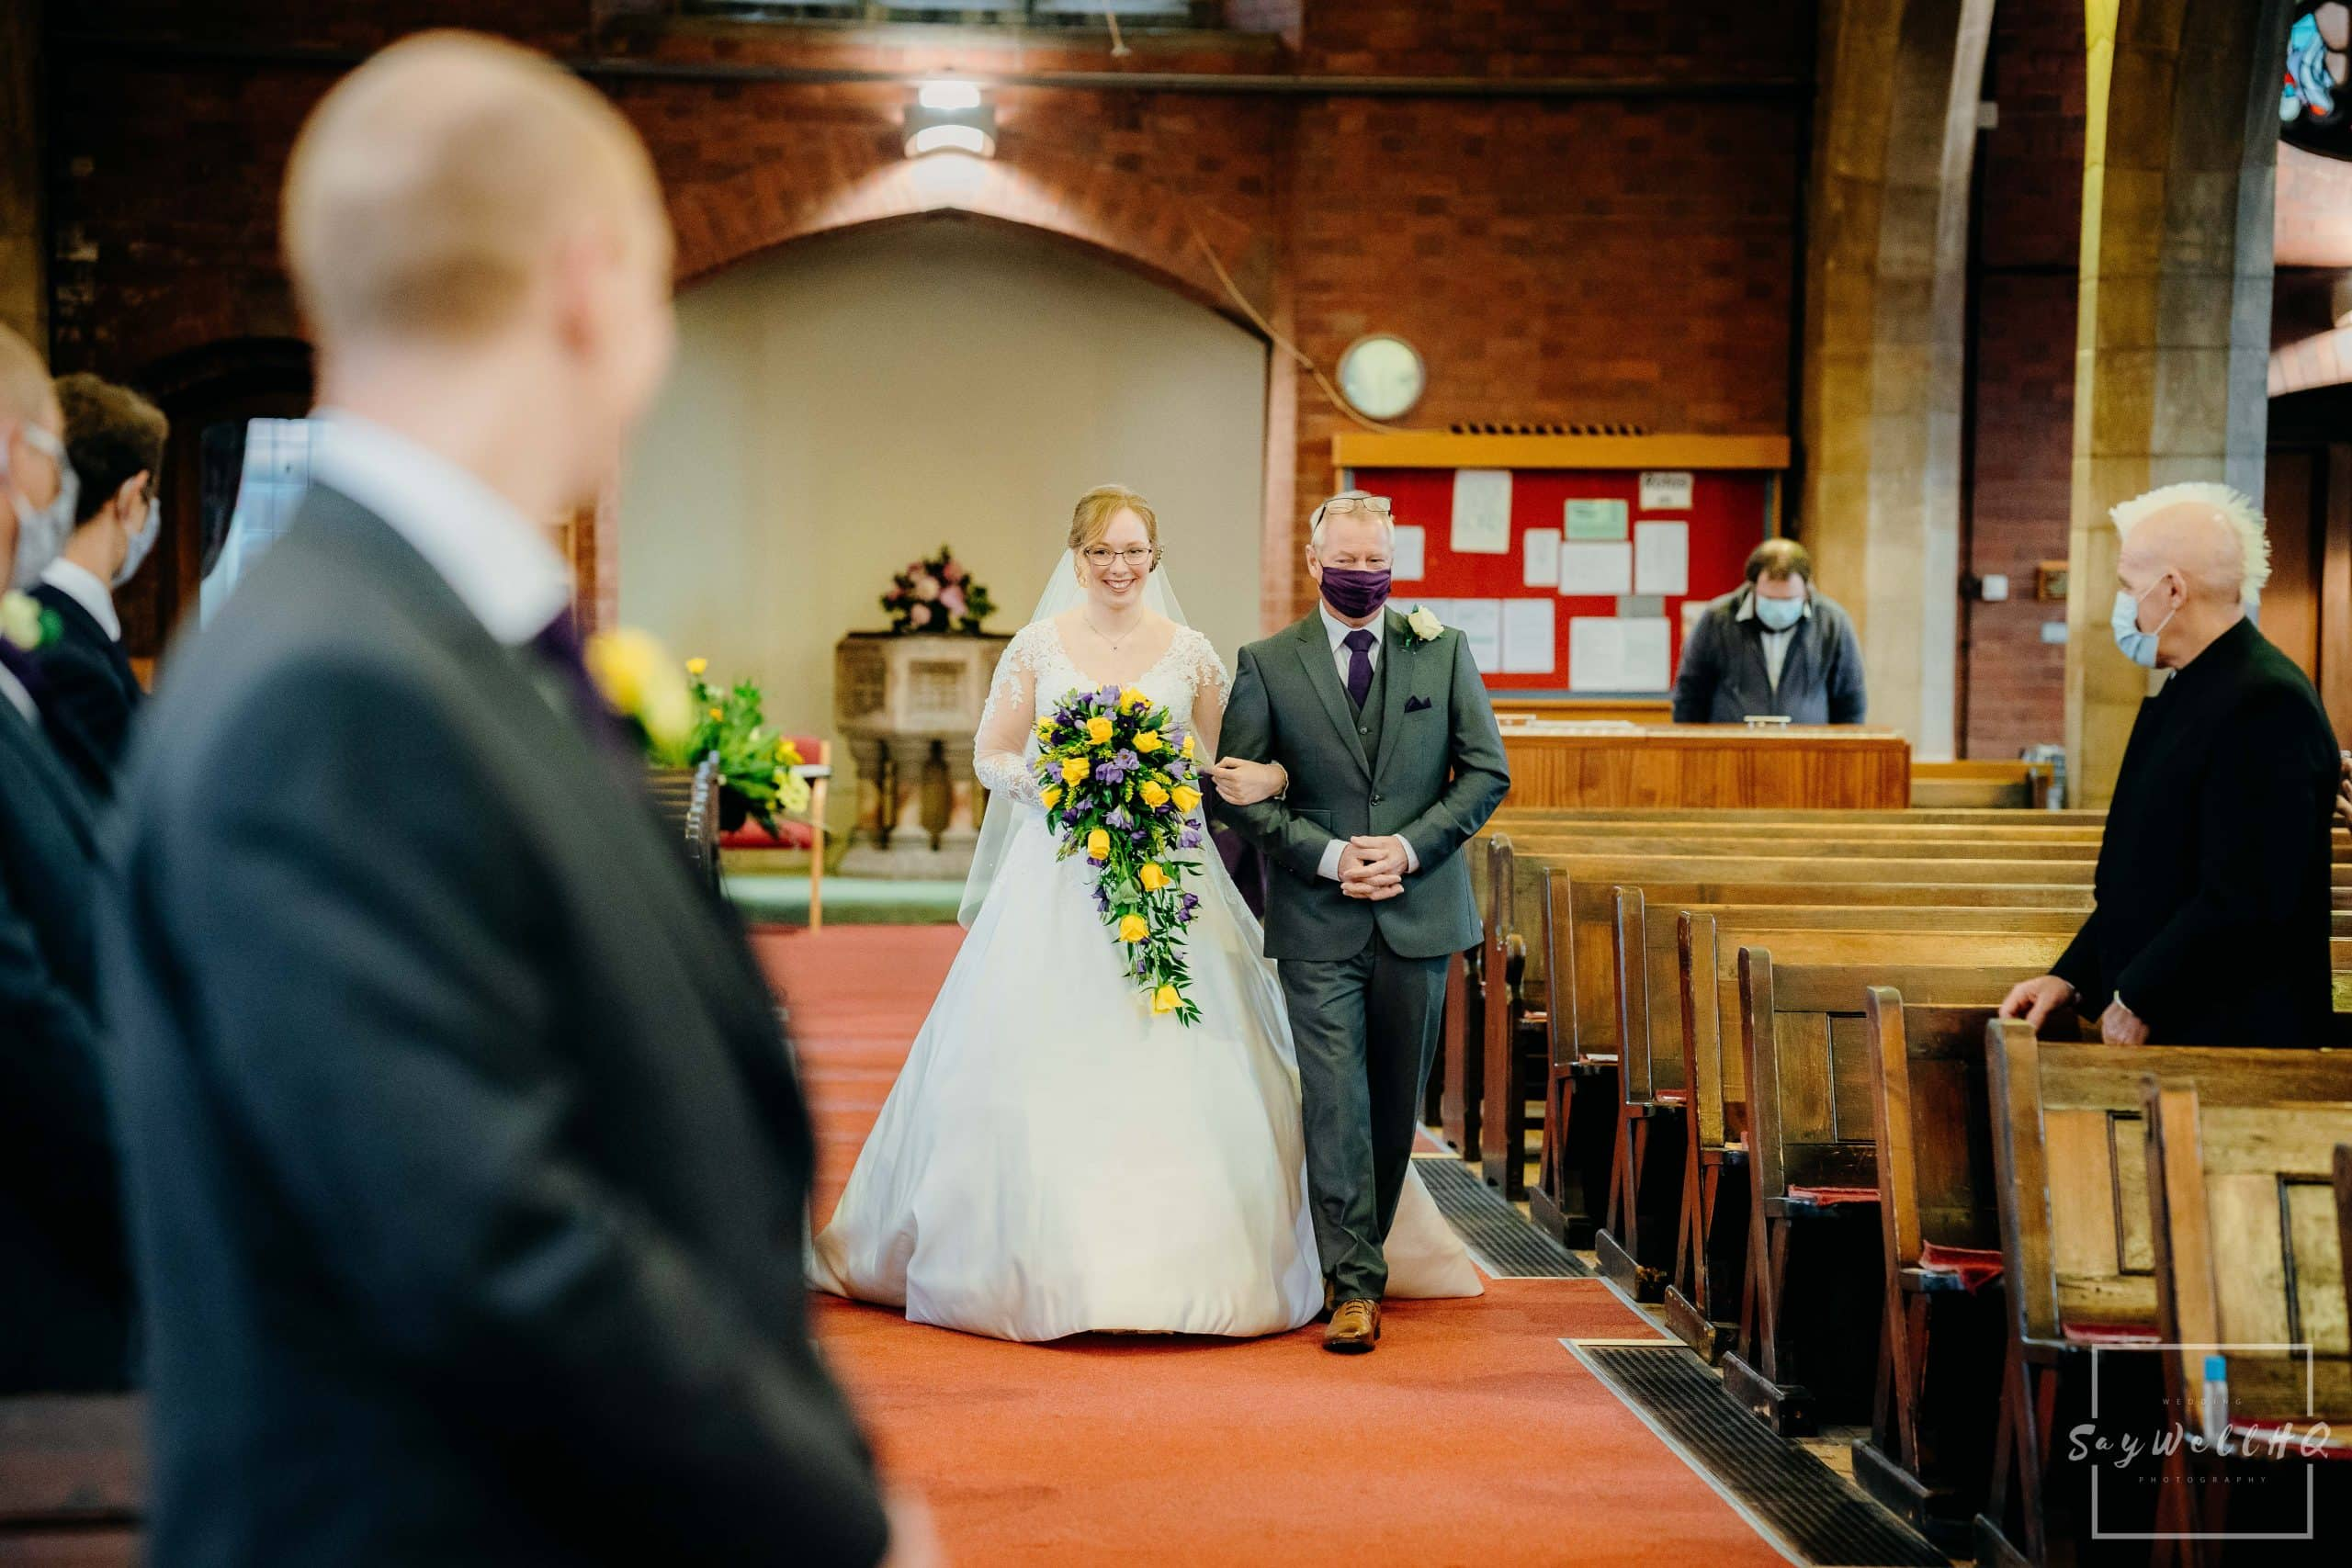 Bride and her father walking down the aisle at her micro wedding at St Judes Church in Mapperley Nottingham